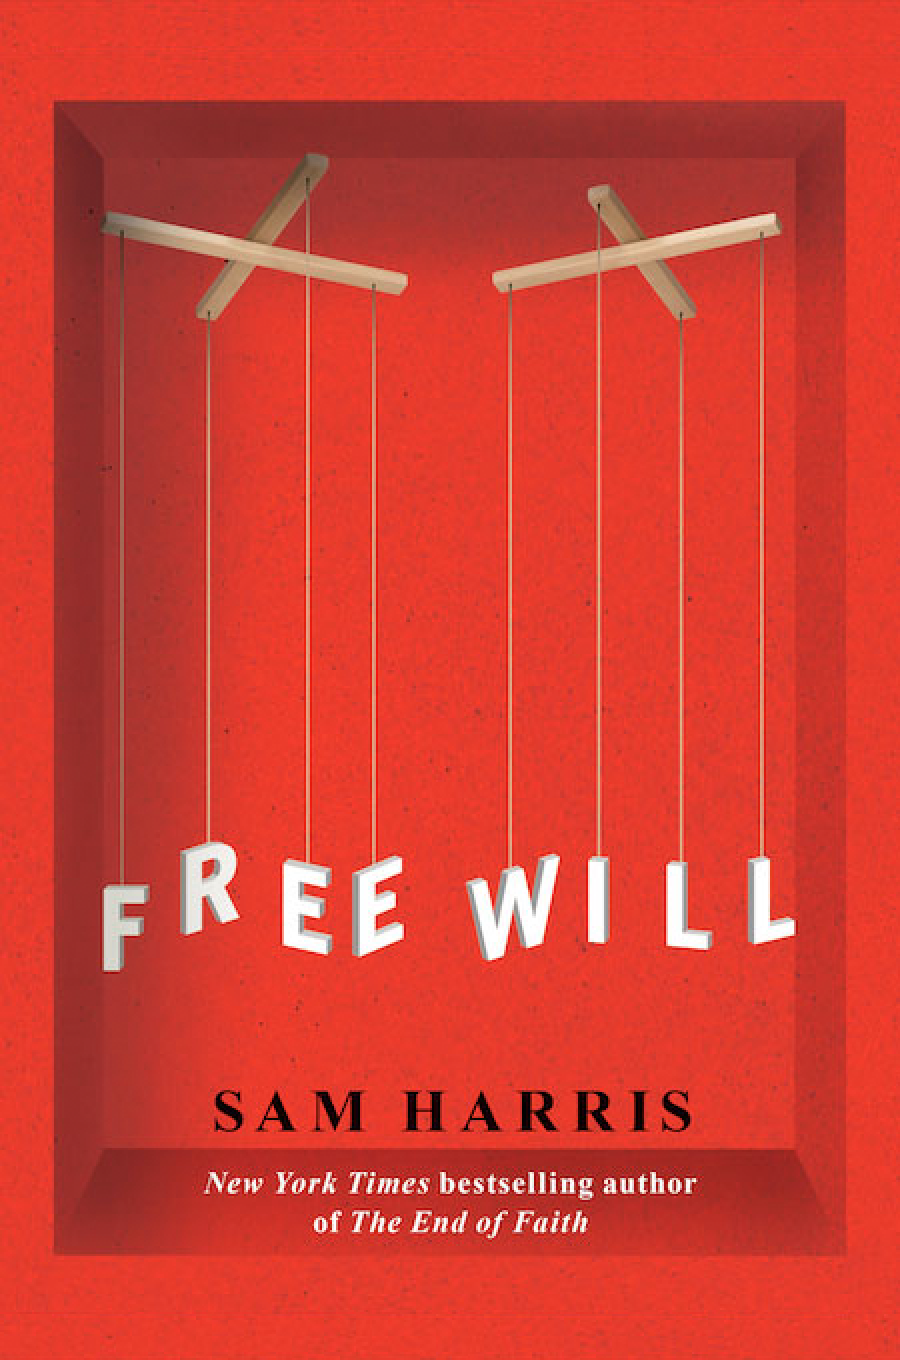 Free Will by Sam Harris - Rating: 8/10Completed: 21/01/2017The only reason this didn't get a higher rating is because of the complexity of the topics it talks about. I found it hard to understand some of the concepts. I'll have to listen to/read it again to gather a further understanding. Key Takeaway(s): - The decisions you make may not entirely be your own, no matter how much you believe they are.